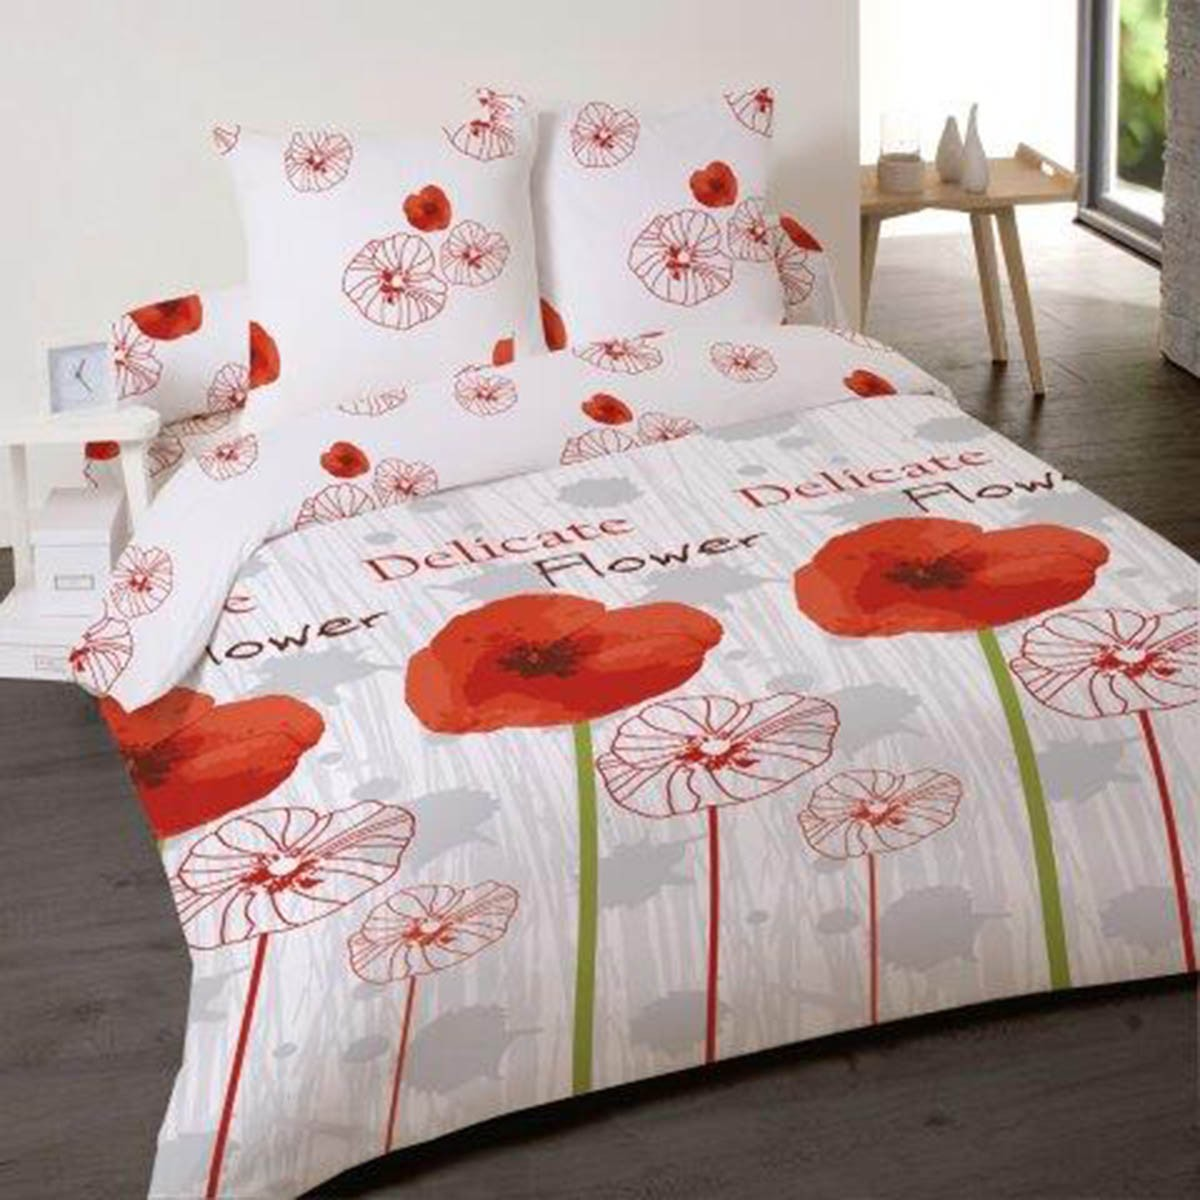 marvelous housse de couette coquelicot 4 housse de couette grise coquelicot flower 220x240 2. Black Bedroom Furniture Sets. Home Design Ideas